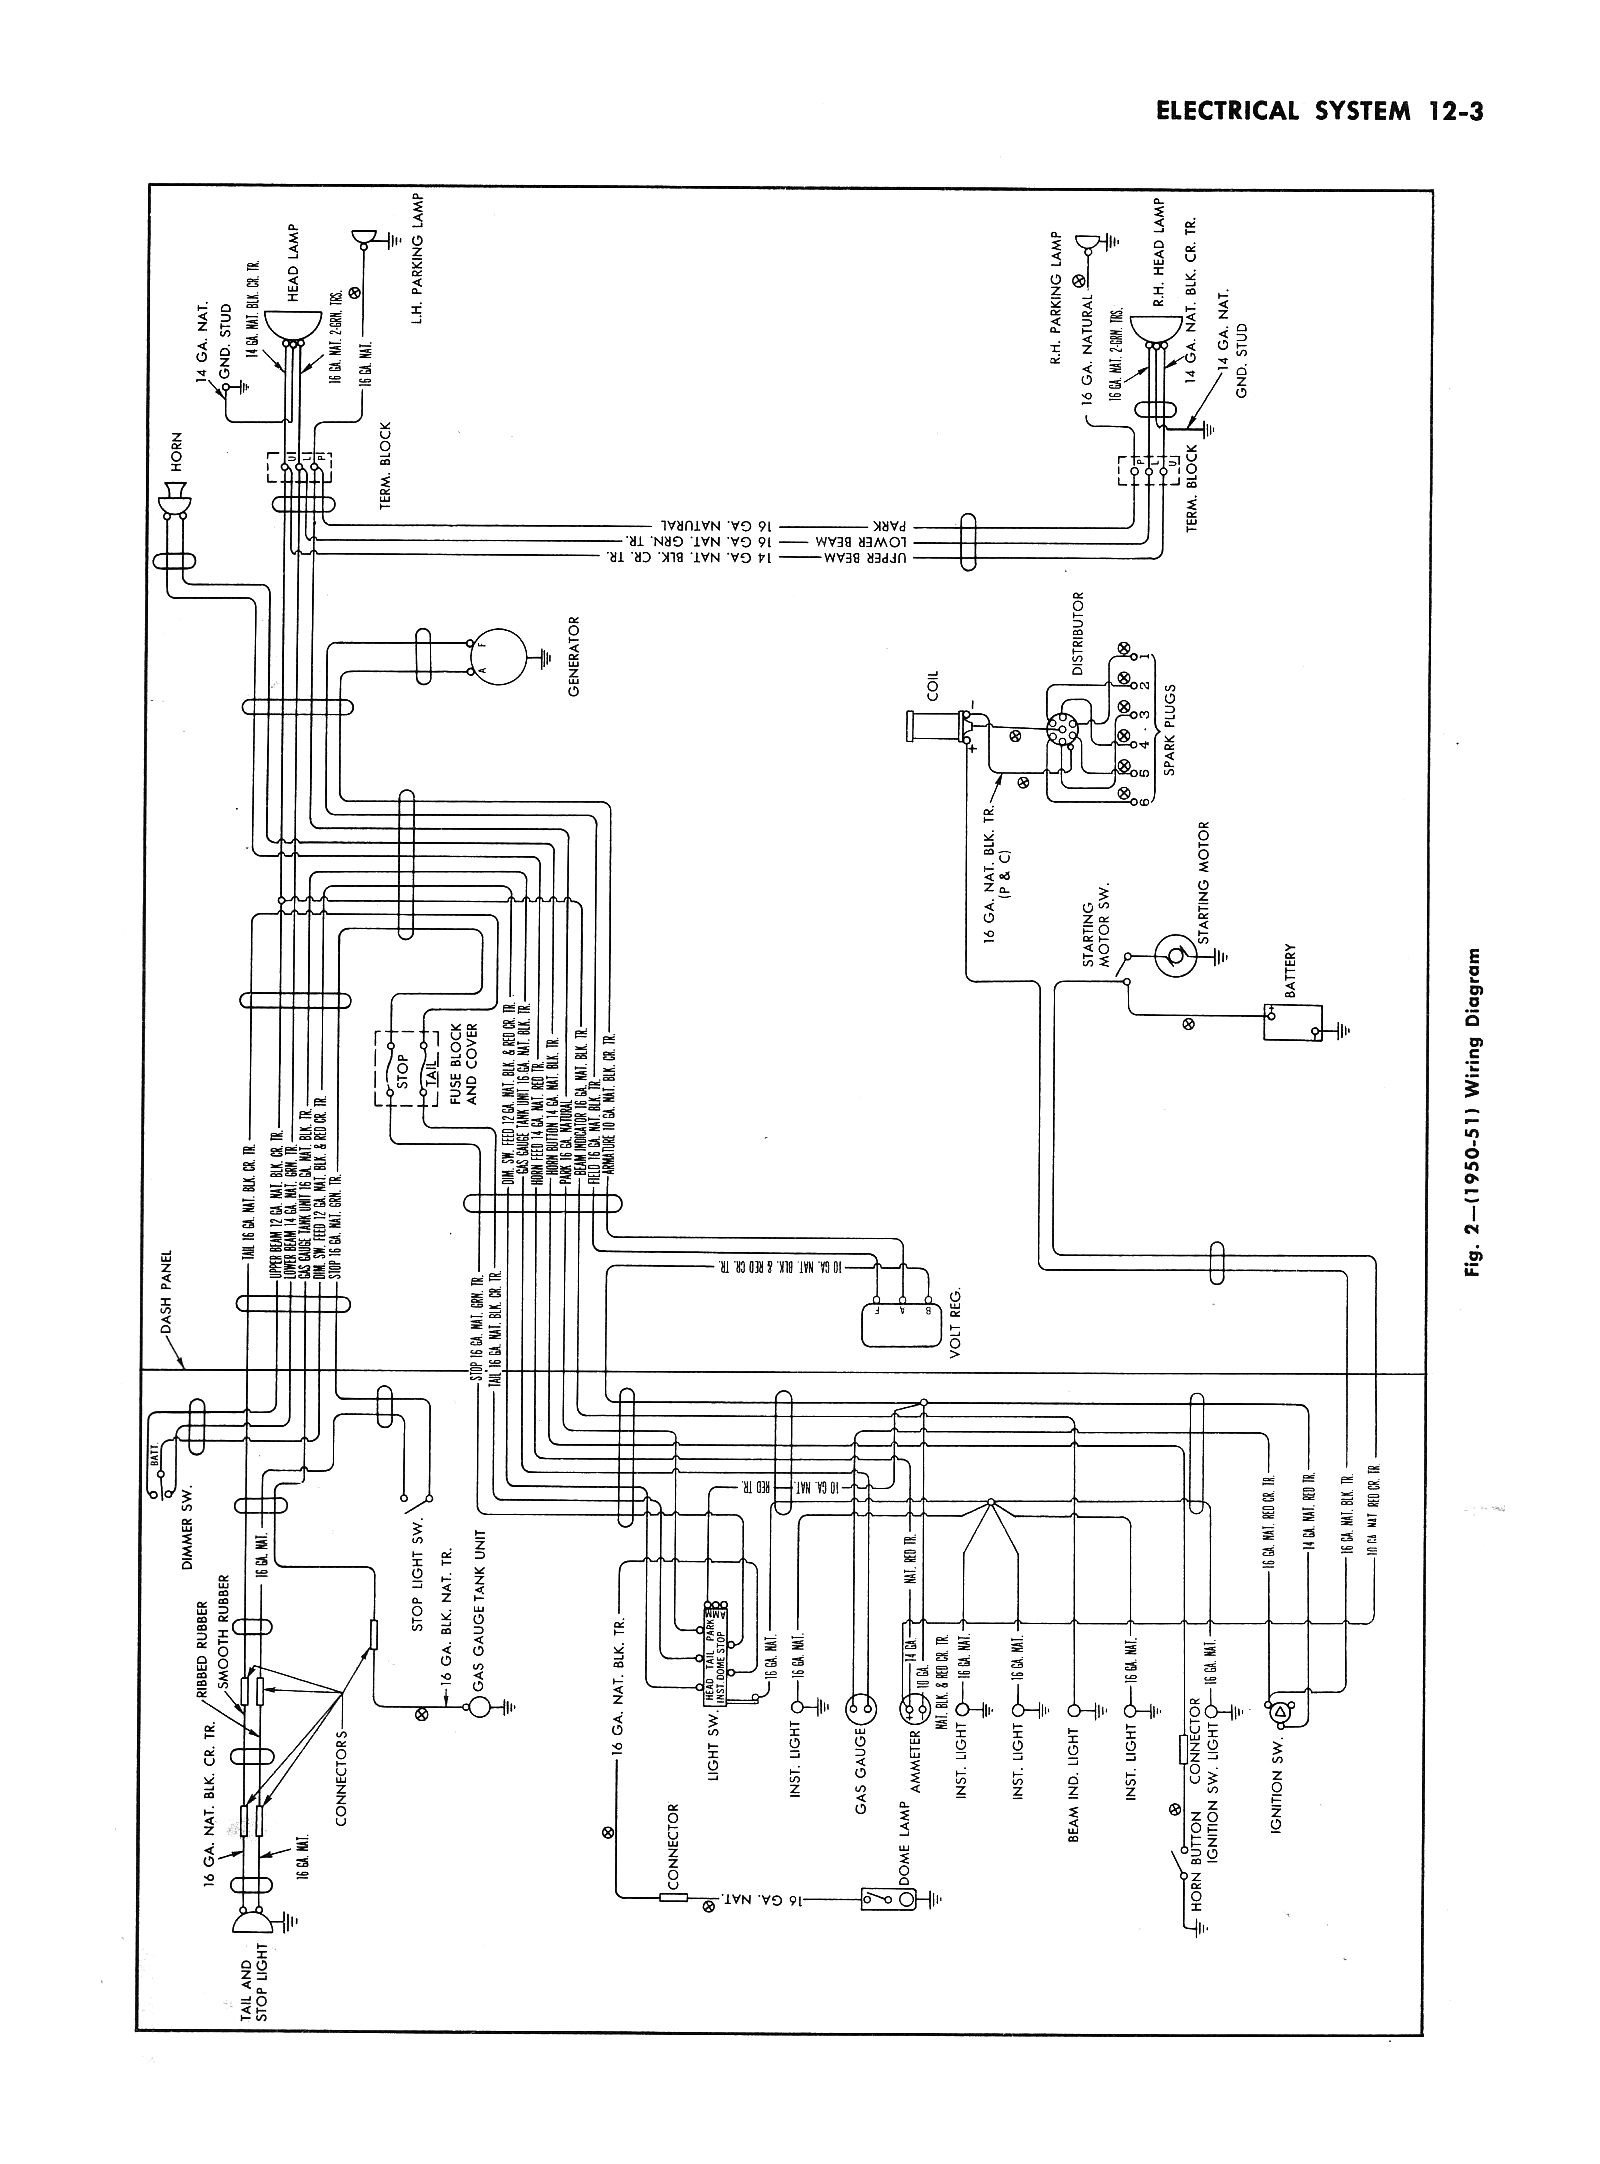 gmc c7500 wiring diagram starter with Wiring on Wiring furthermore Trailer Wire Diagram 4 Wire besides 3y0ue Need Wiring Diagram 2006 Ton Silverado Flatbed Chevy also 1999 2003 20Vortec 20V8 20PCM 20schematics also Chevrolet S 10 4 3 2001 Specs And Images.